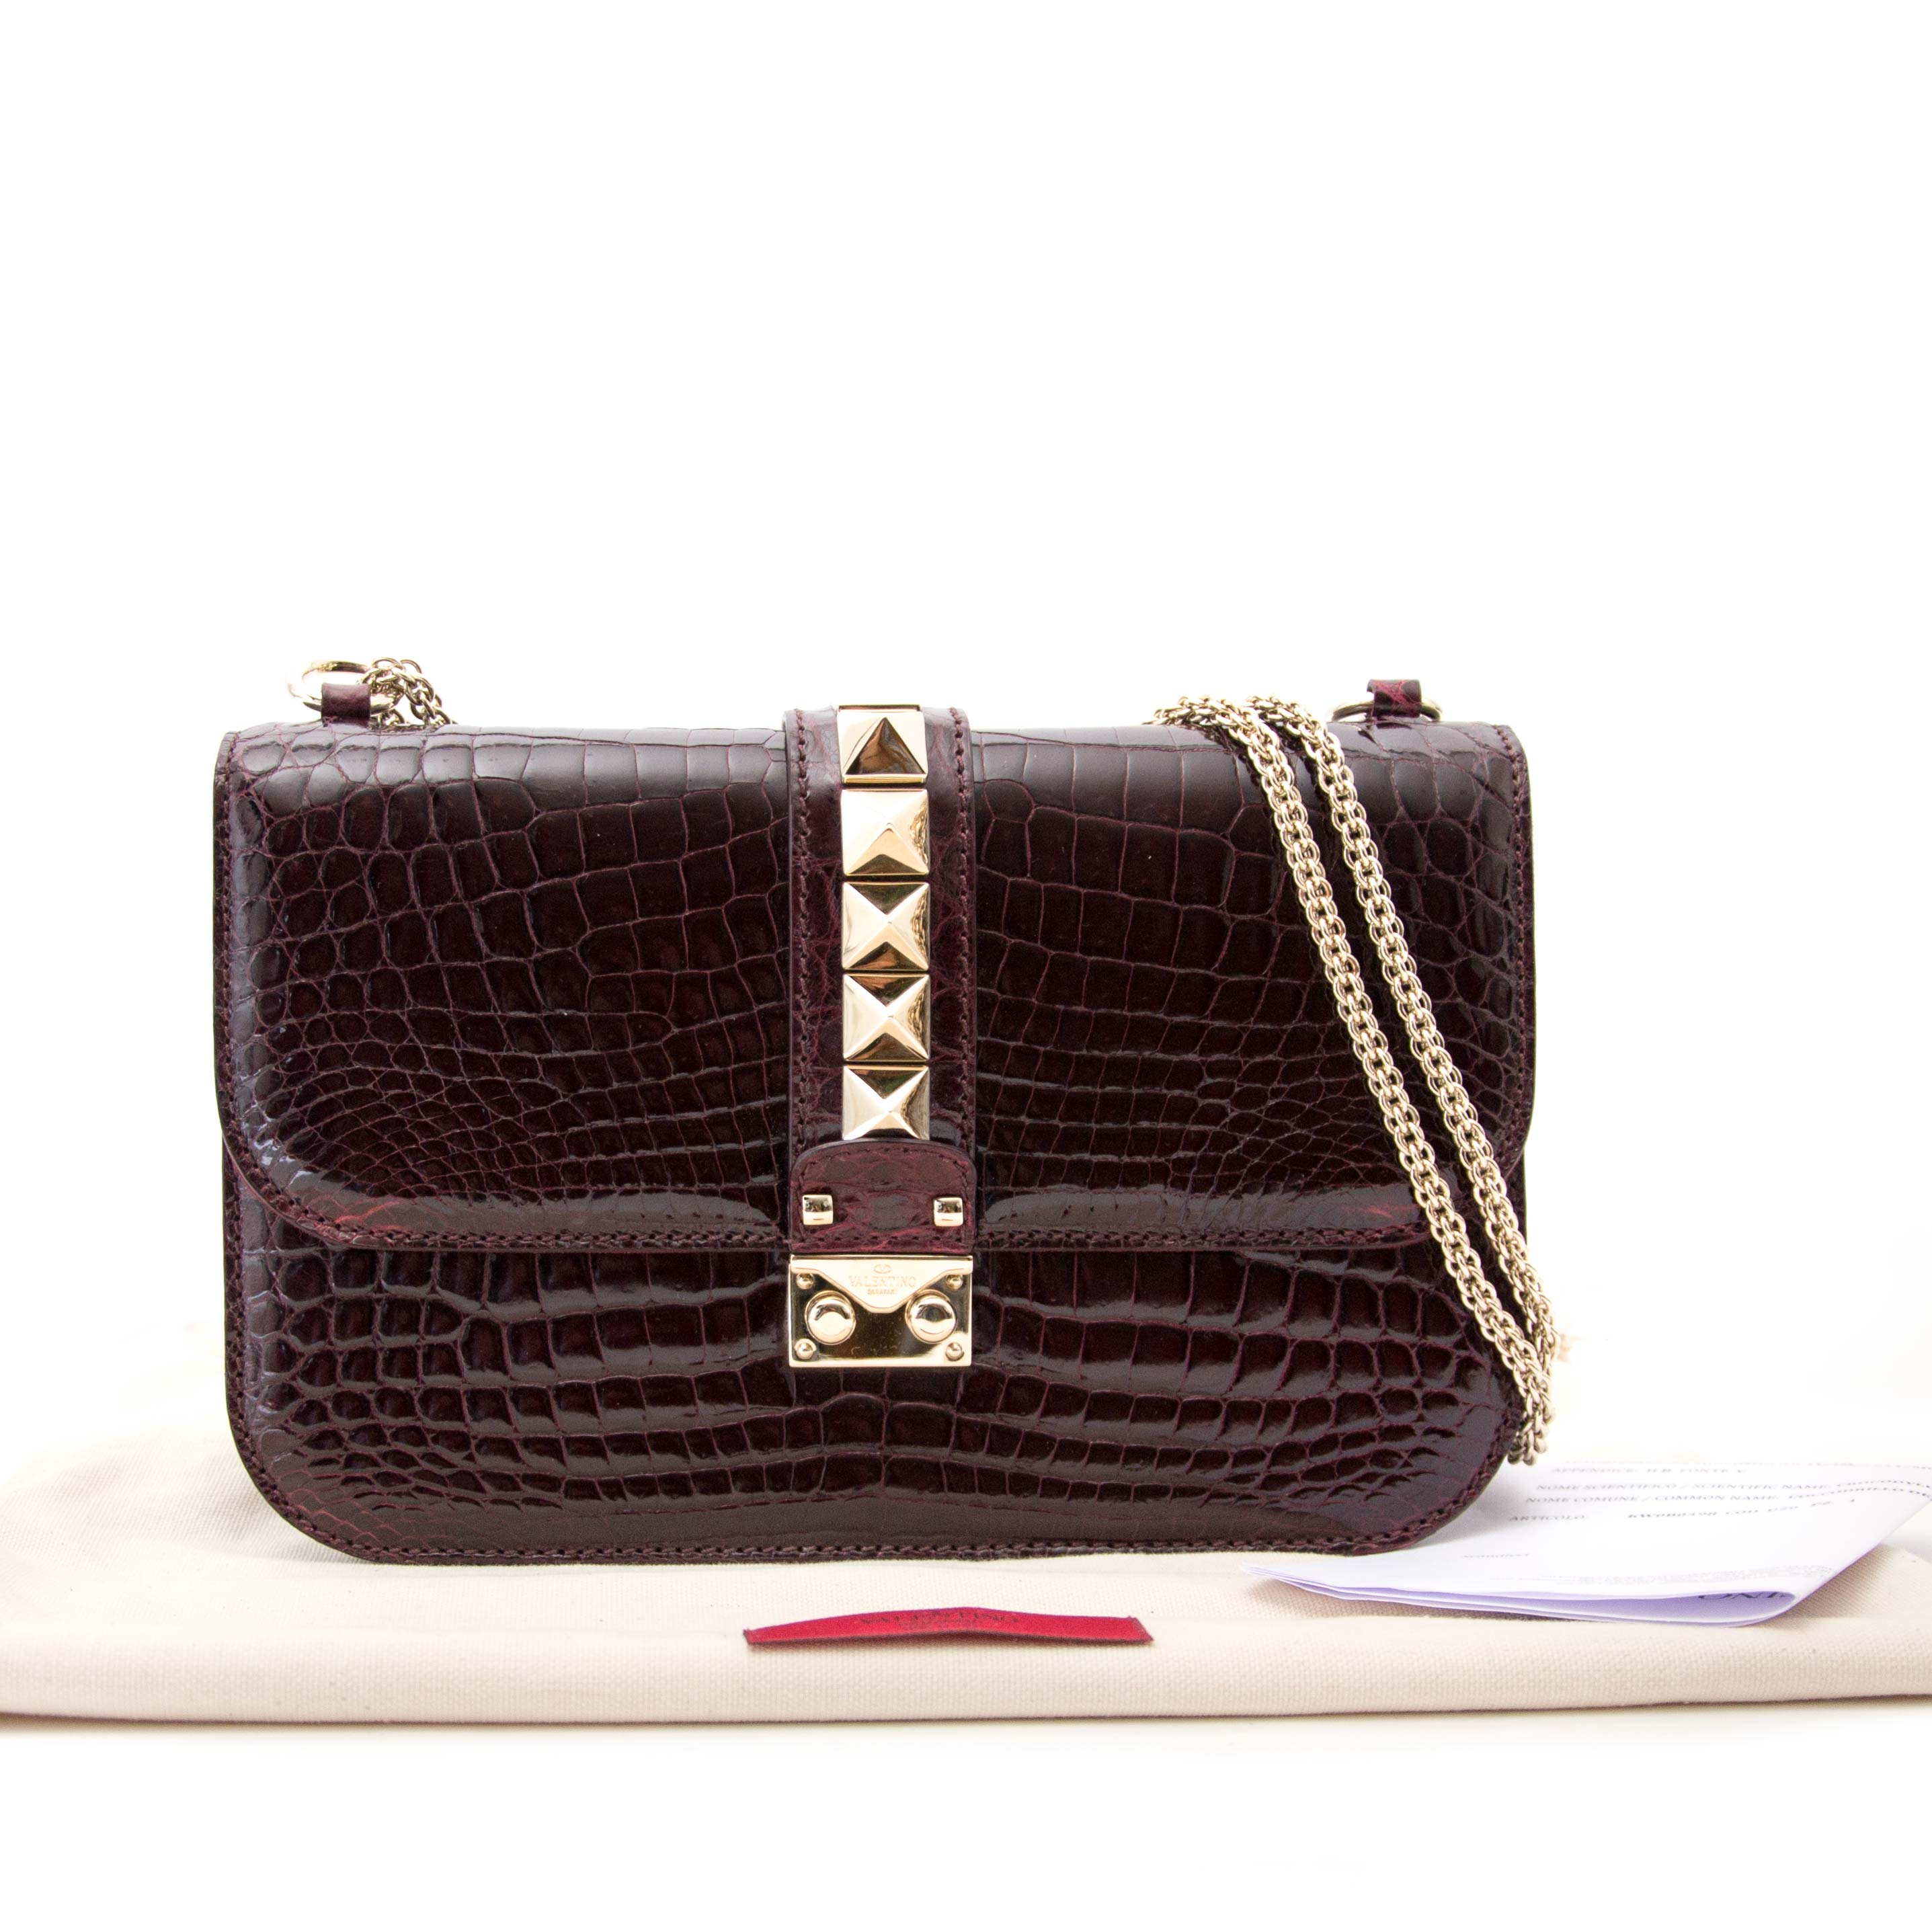 acheter en ligne seconde main Never Used Aubergine Valentino Rock Lock Medium Niloticus Crossbody Bag